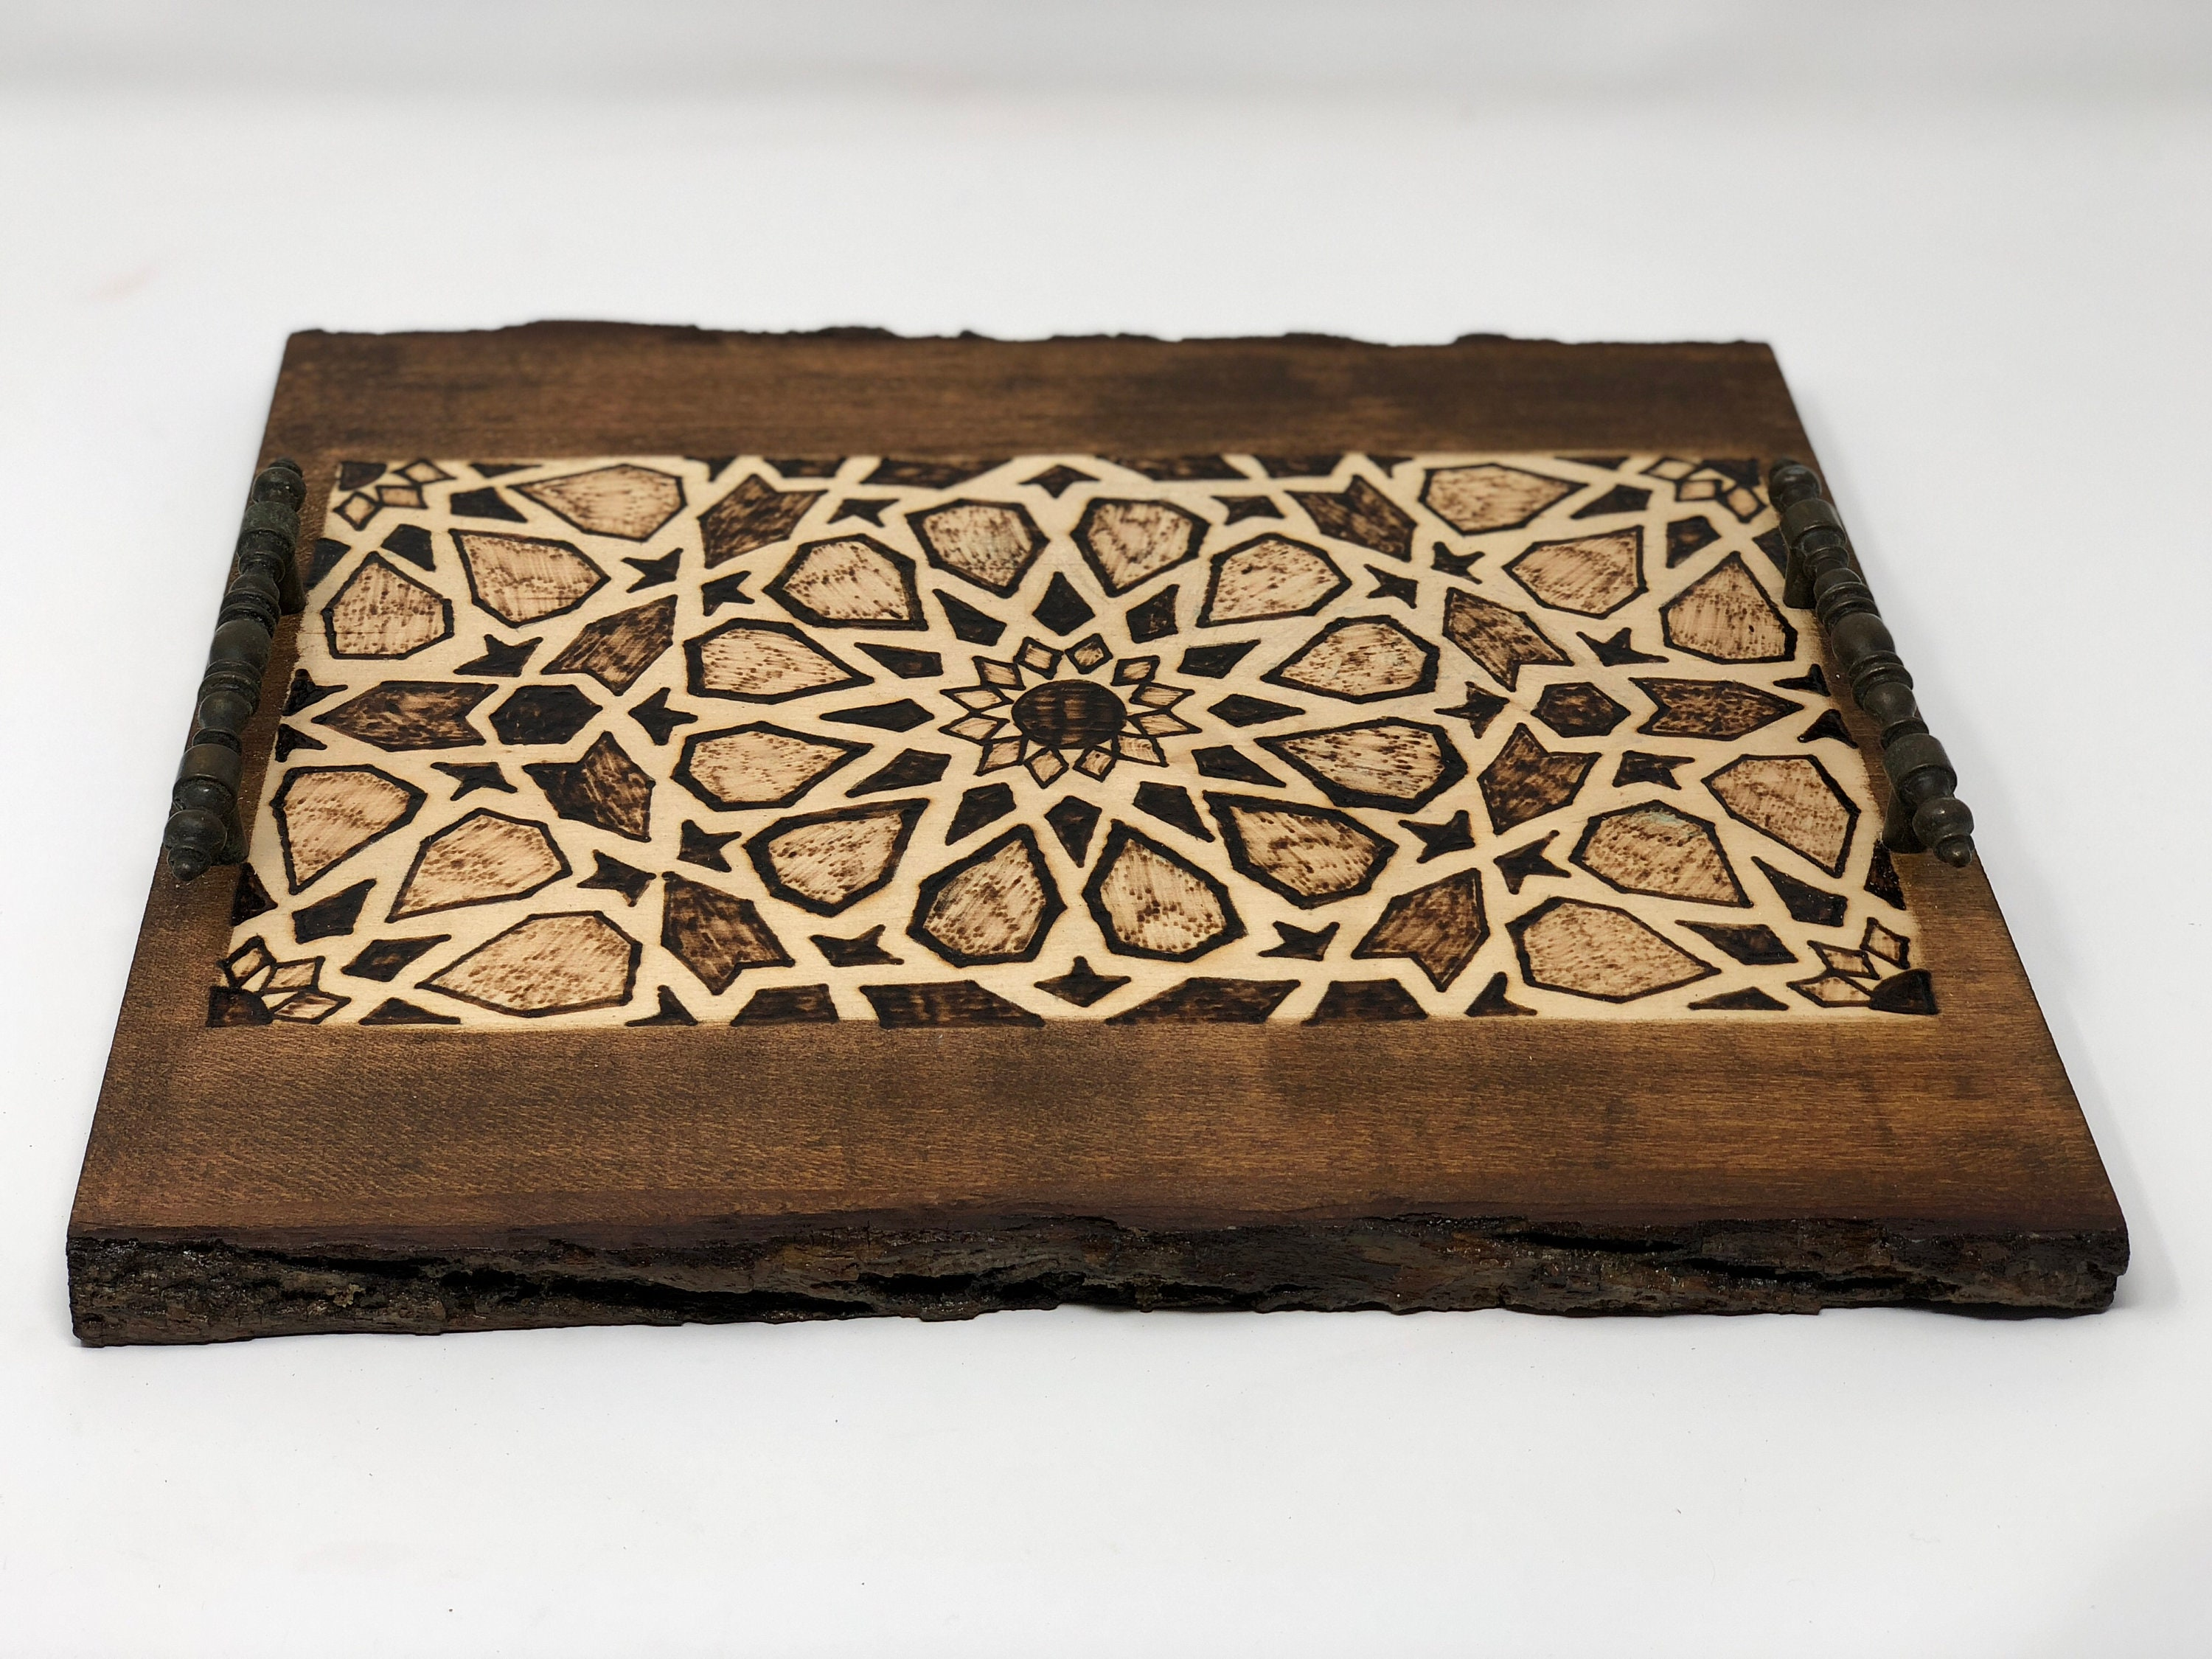 The Arabesque Decorative Wooden Tray With Mamluk